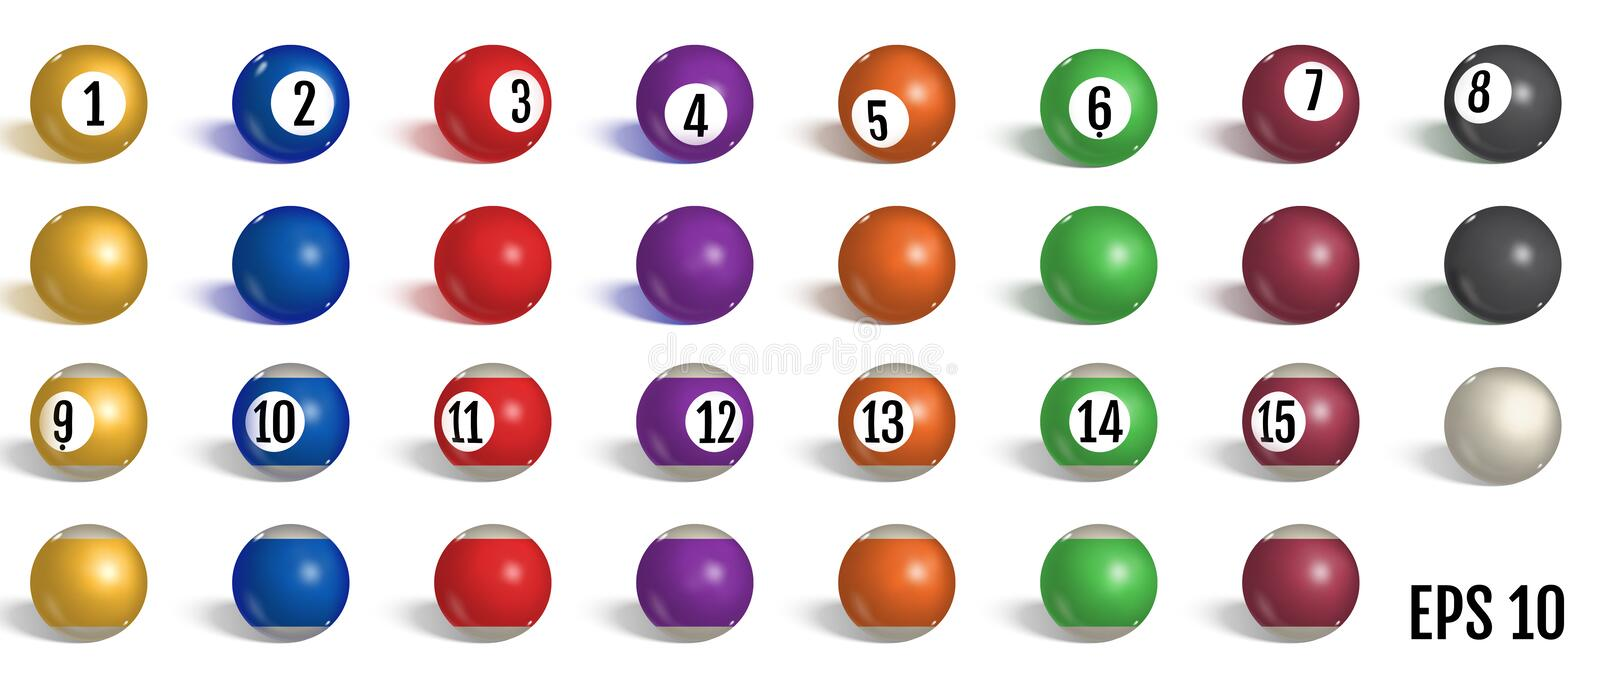 Billiard, pool balls collection. Snooker. Realistic balls on white background. Vector illustration vector illustration